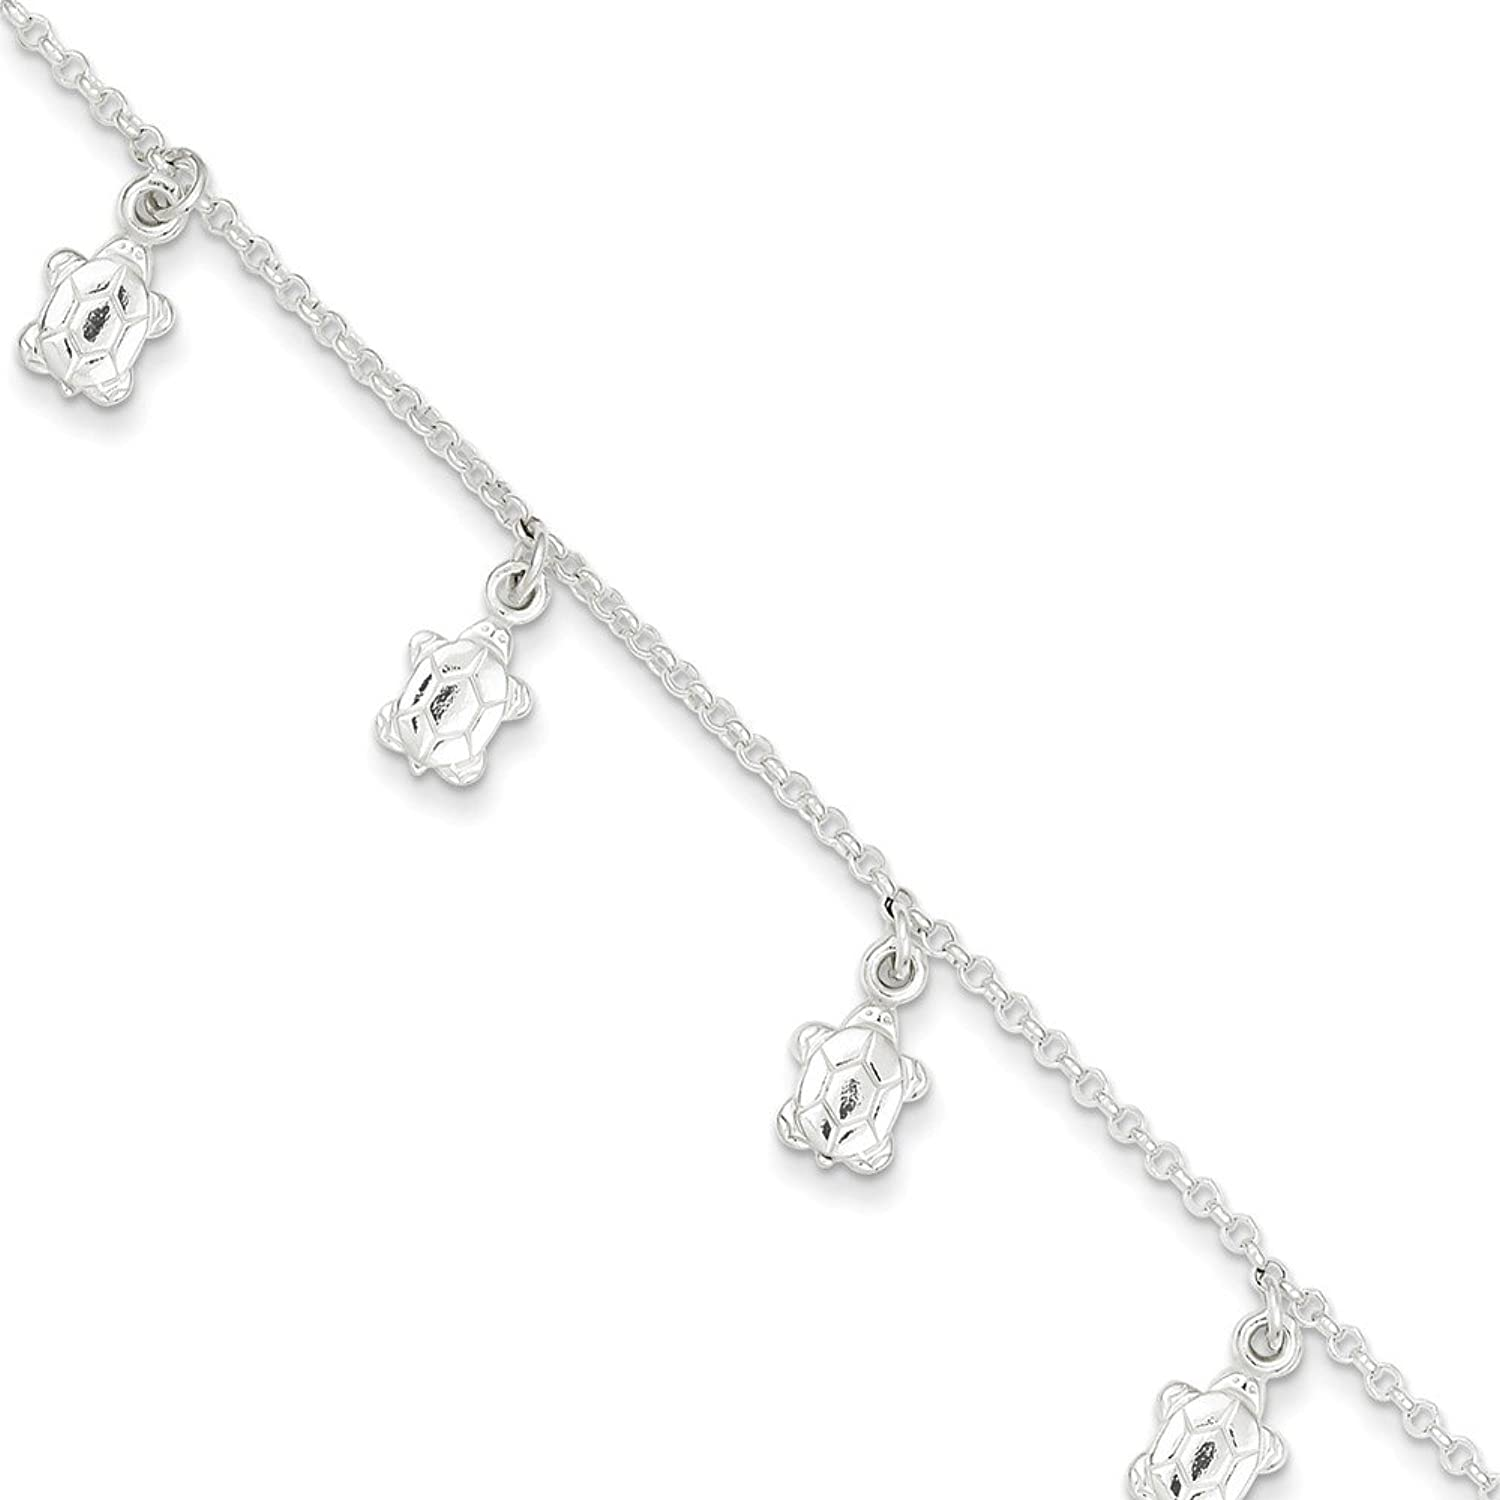 """.925 Sterling Silver 2.00MM Polished Turtle Anklet Bracelet With 1"""" Extender, 9 Inches"""